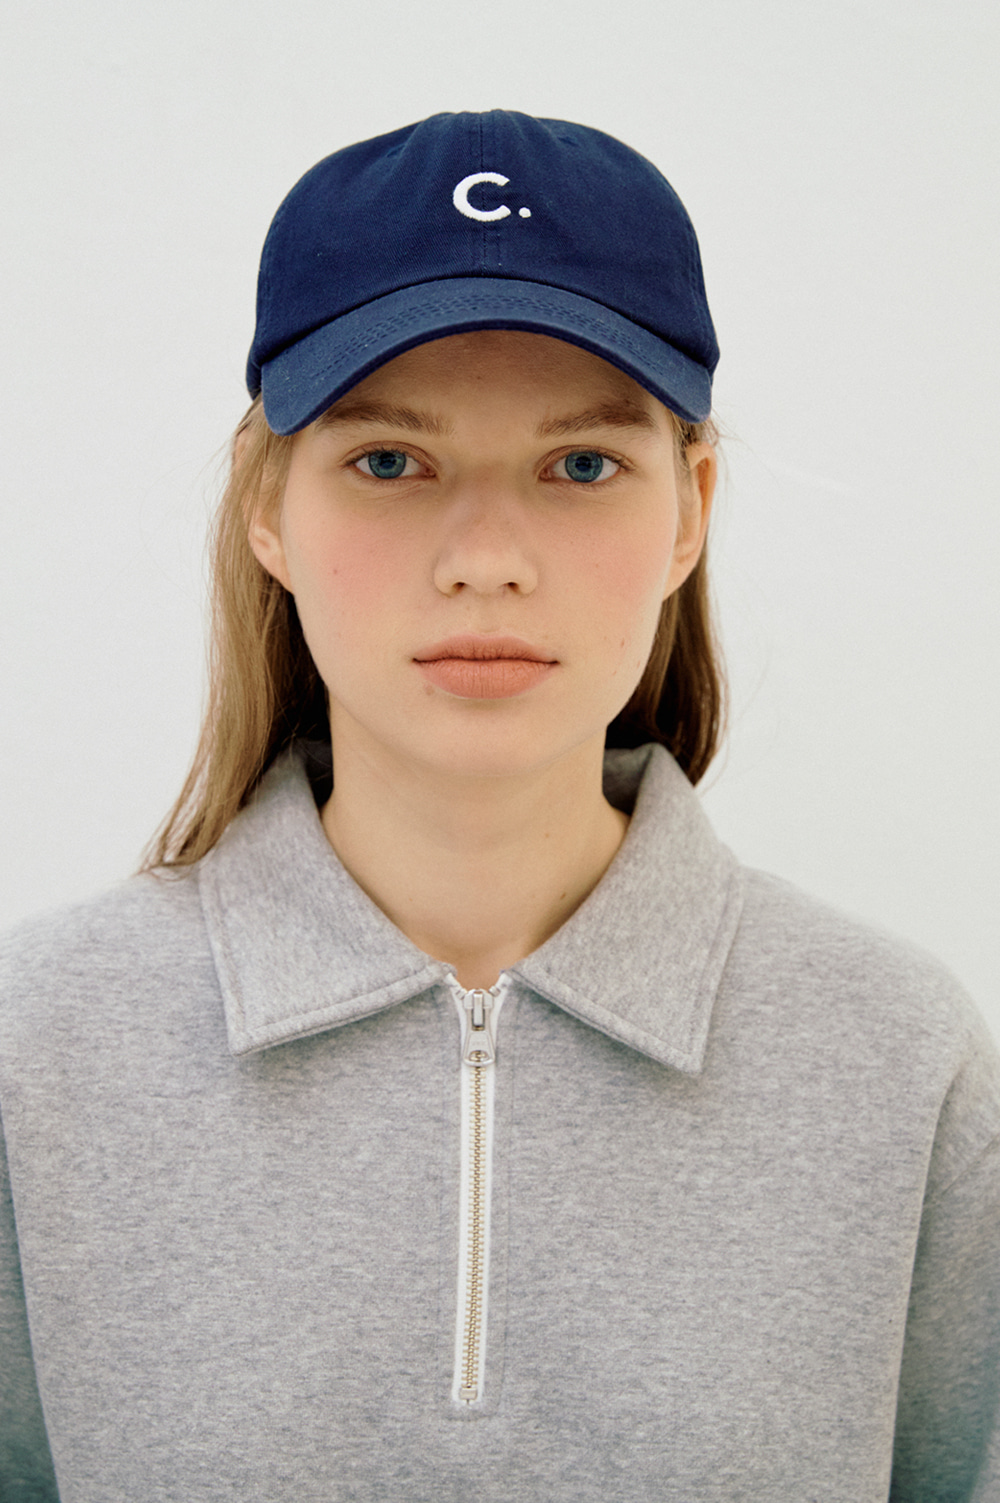 clove - Basic Fit Ball Cap (Navy)